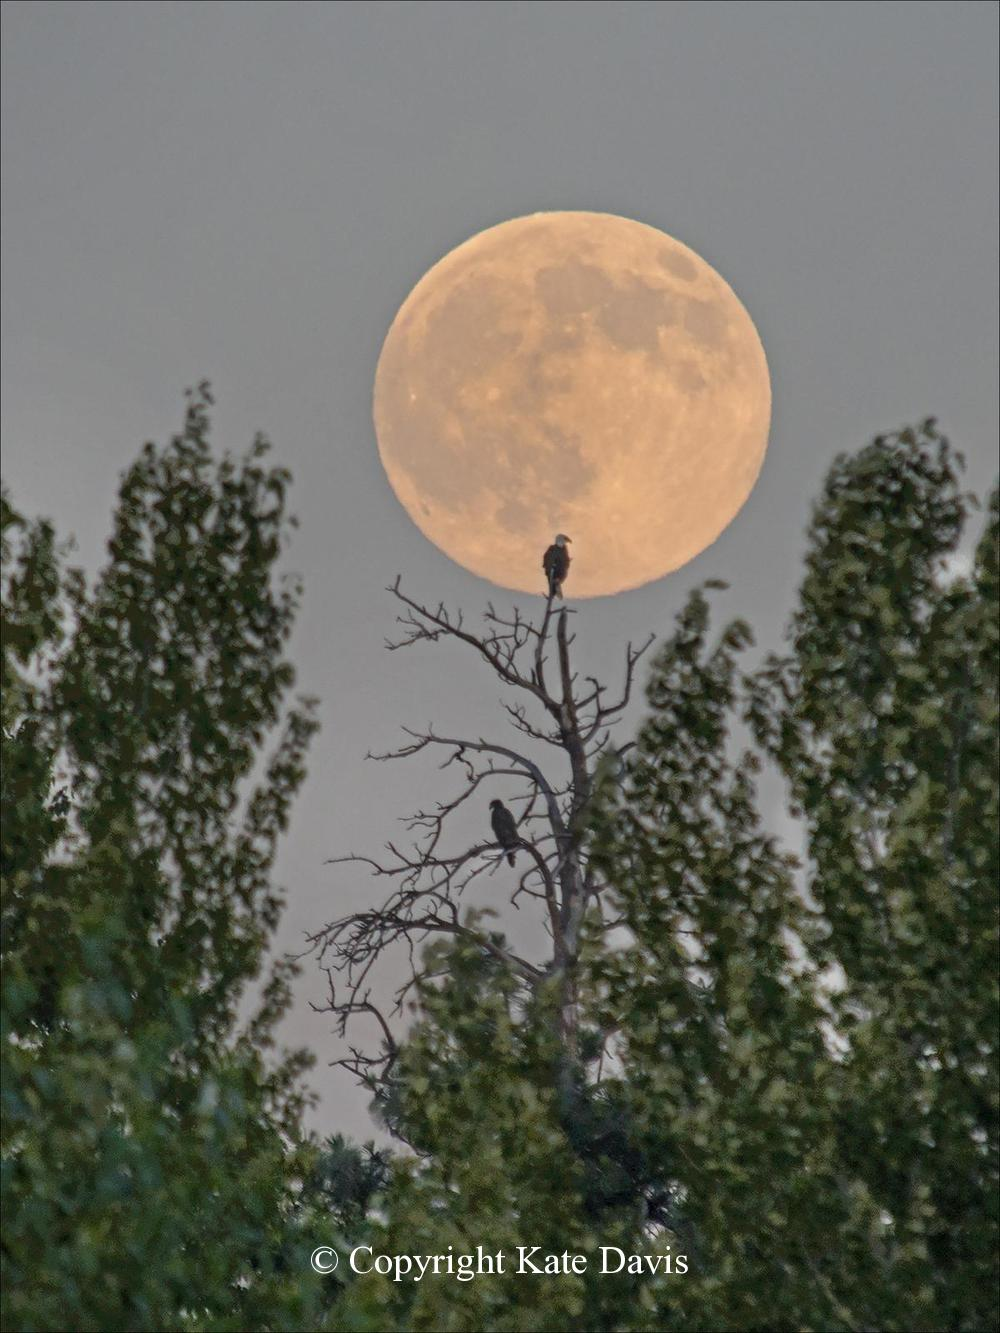 American Bald Eagle - The Supermoon 2014 - Golden Eagle - Bald Eagle adult, chick, nest and the Supermoon  of 2014